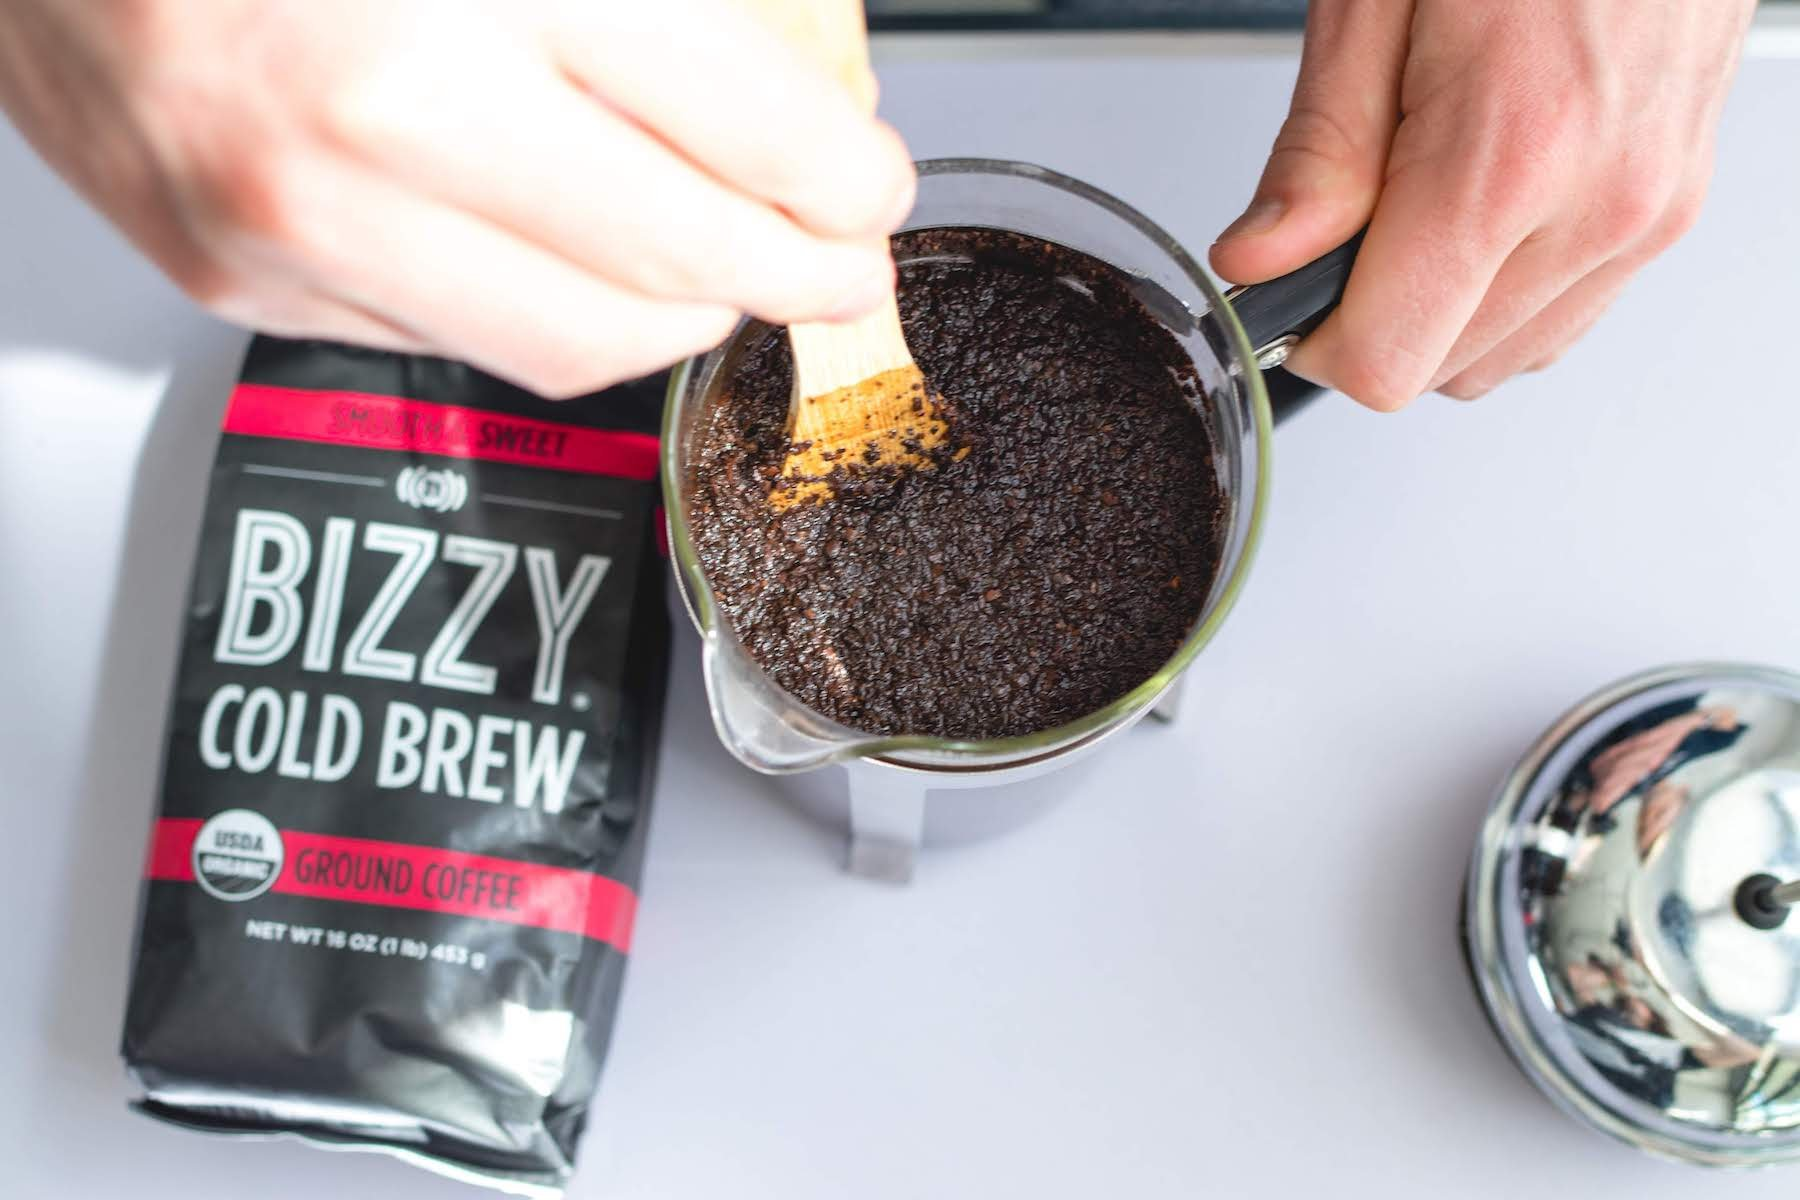 Bizzy Organic Cold Brew Coffee - Smooth & Sweet Blend - Coarse Ground Coffee - 1 Pound by Bizzy (Image #6)